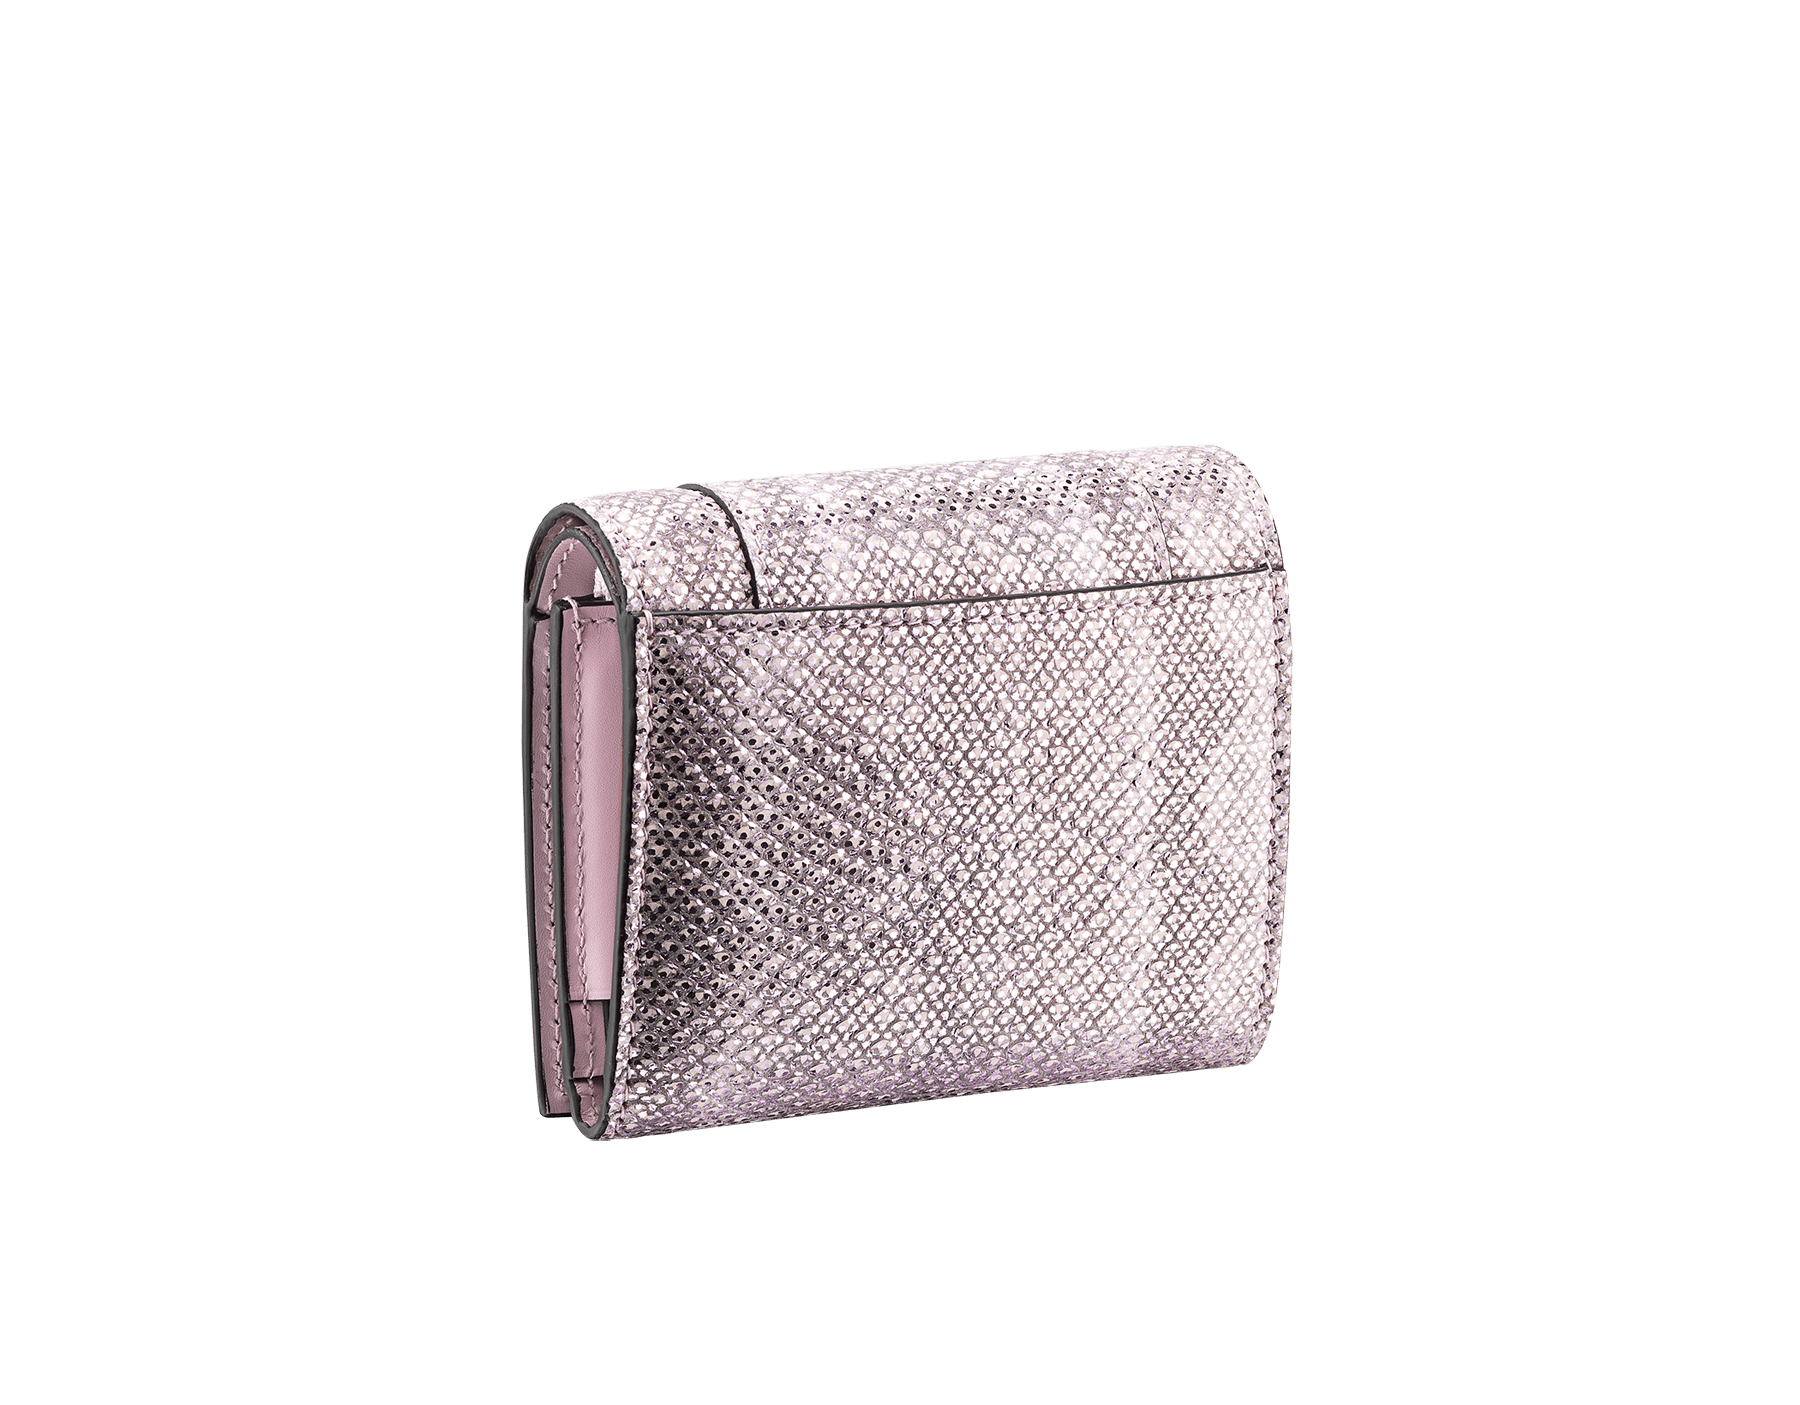 Serpenti Forever super compact wallet in rosa di francia metallic karung skin and rosa di francia calf leather. Iconic snakehead press stud closure in black and rosa di francia enamel, black enamel eyes. 289080 image 3